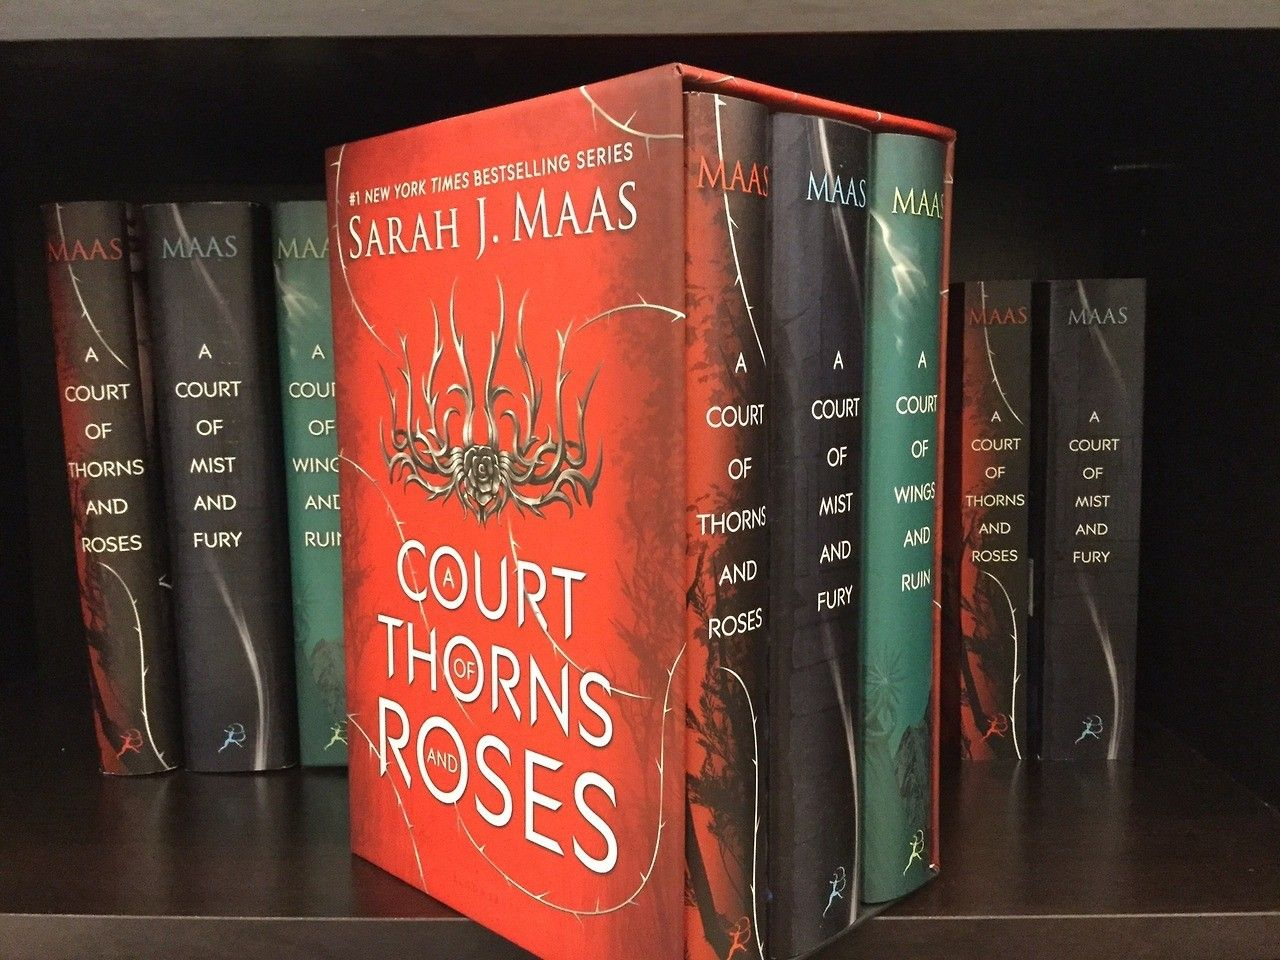 A Court Of Thorns And Roses Hardcover Box Set It S Soooooo Pretty